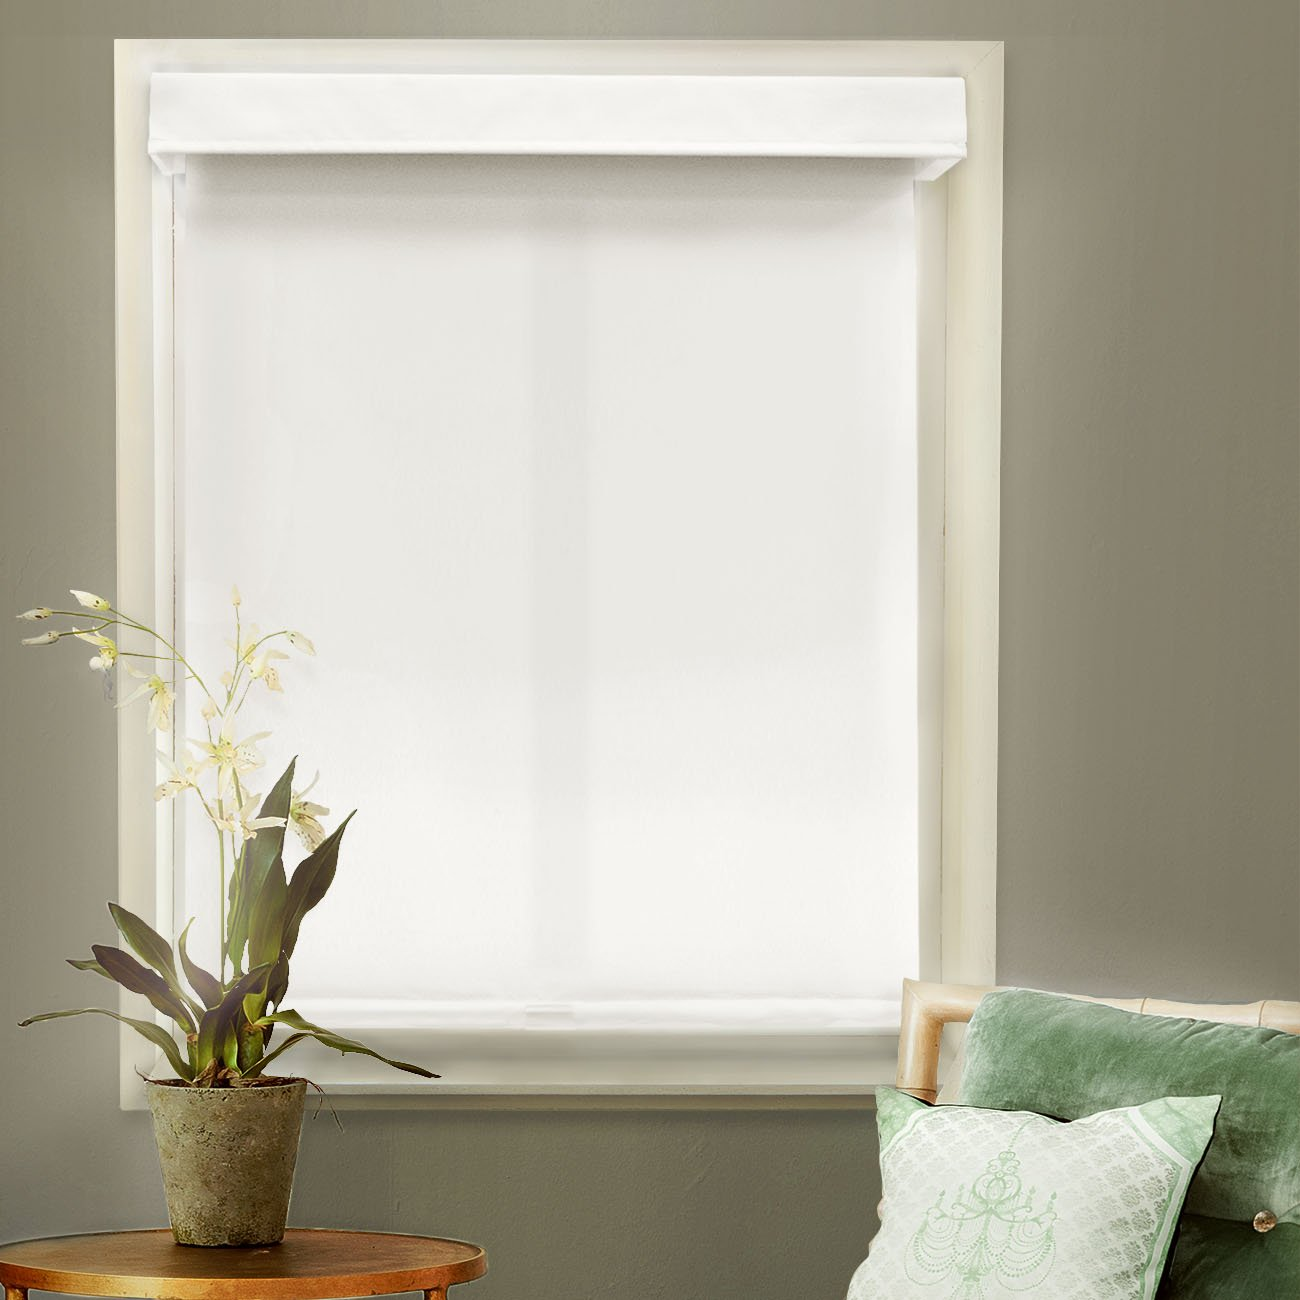 Snow white thermal fabric roman shades free shipping on orders over - Amazon Com Chicology Free Stop Cordless Roller Shades Blind Curtain Drape No Tug Thermal Room Darkening Mountain Snow 27 W X 72 H Home Kitchen